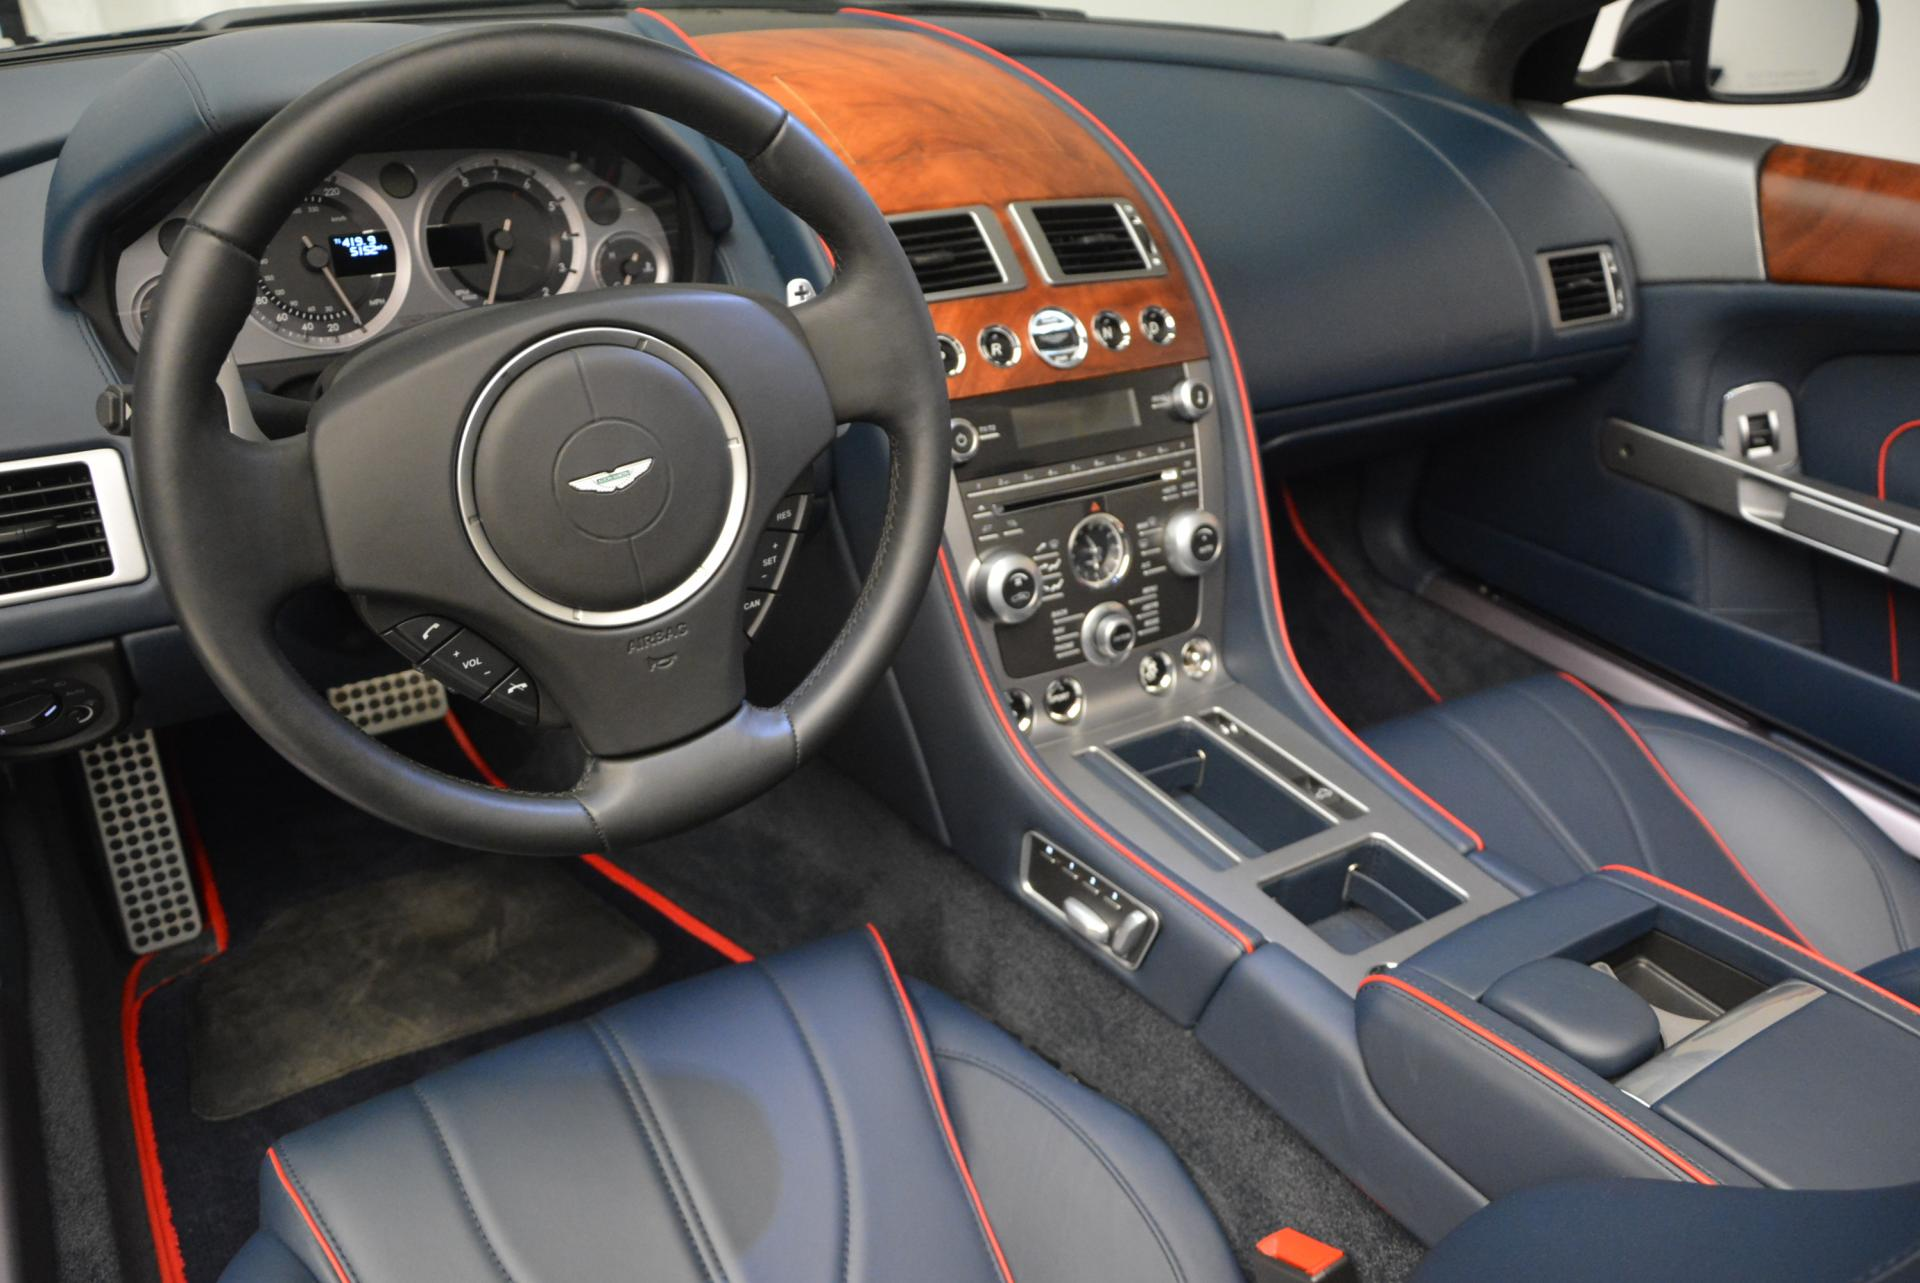 Used 2014 Aston Martin DB9 Volante For Sale In Westport, CT 519_p14